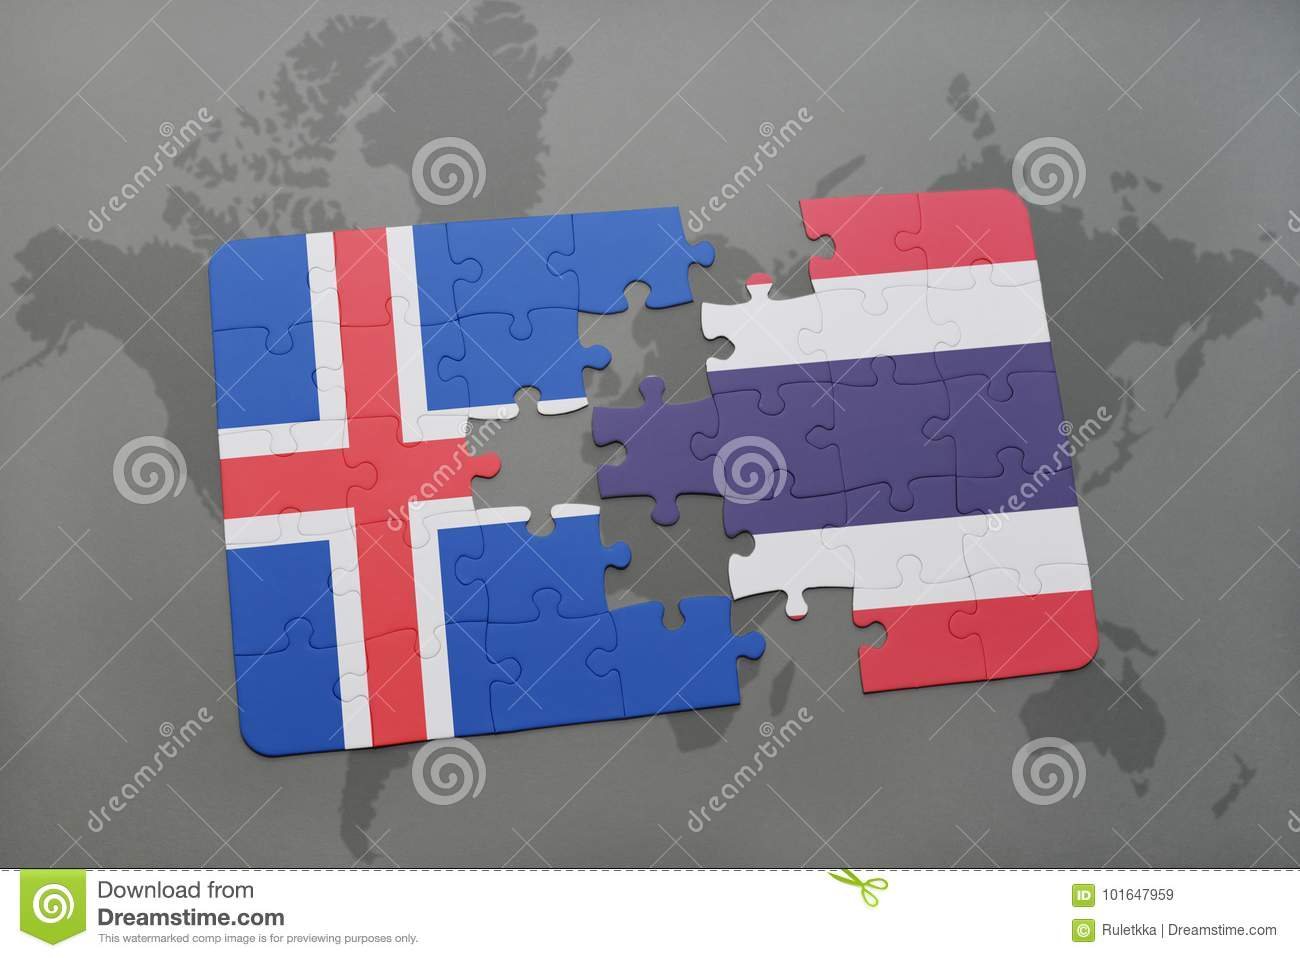 puzzle with the national flag of iceland and thailand on a world map